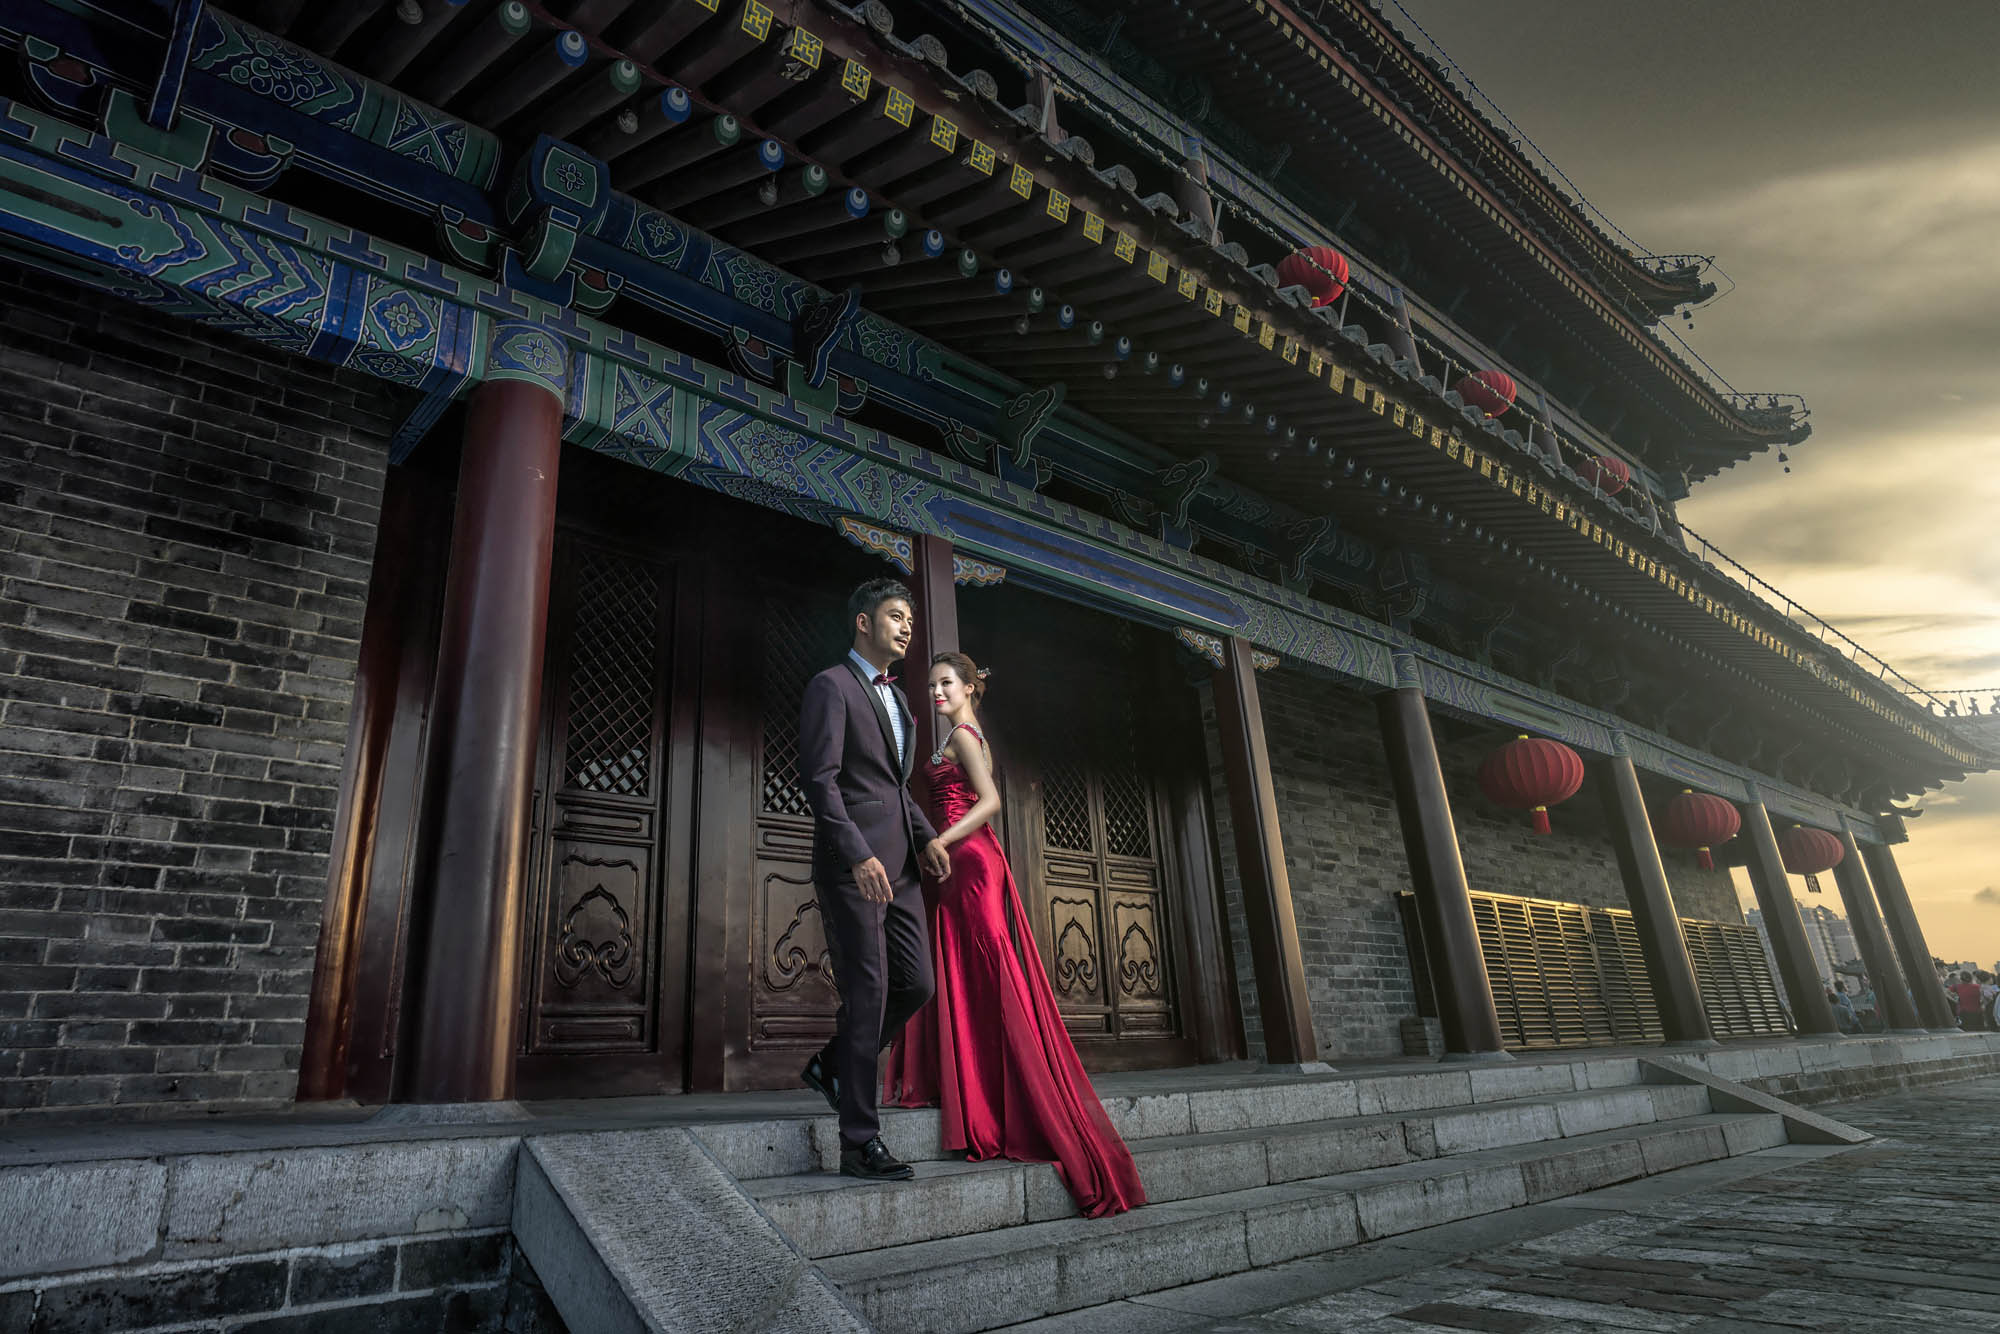 Bride in red gown with groom in tux in historic Chinese temple, by CM Leung